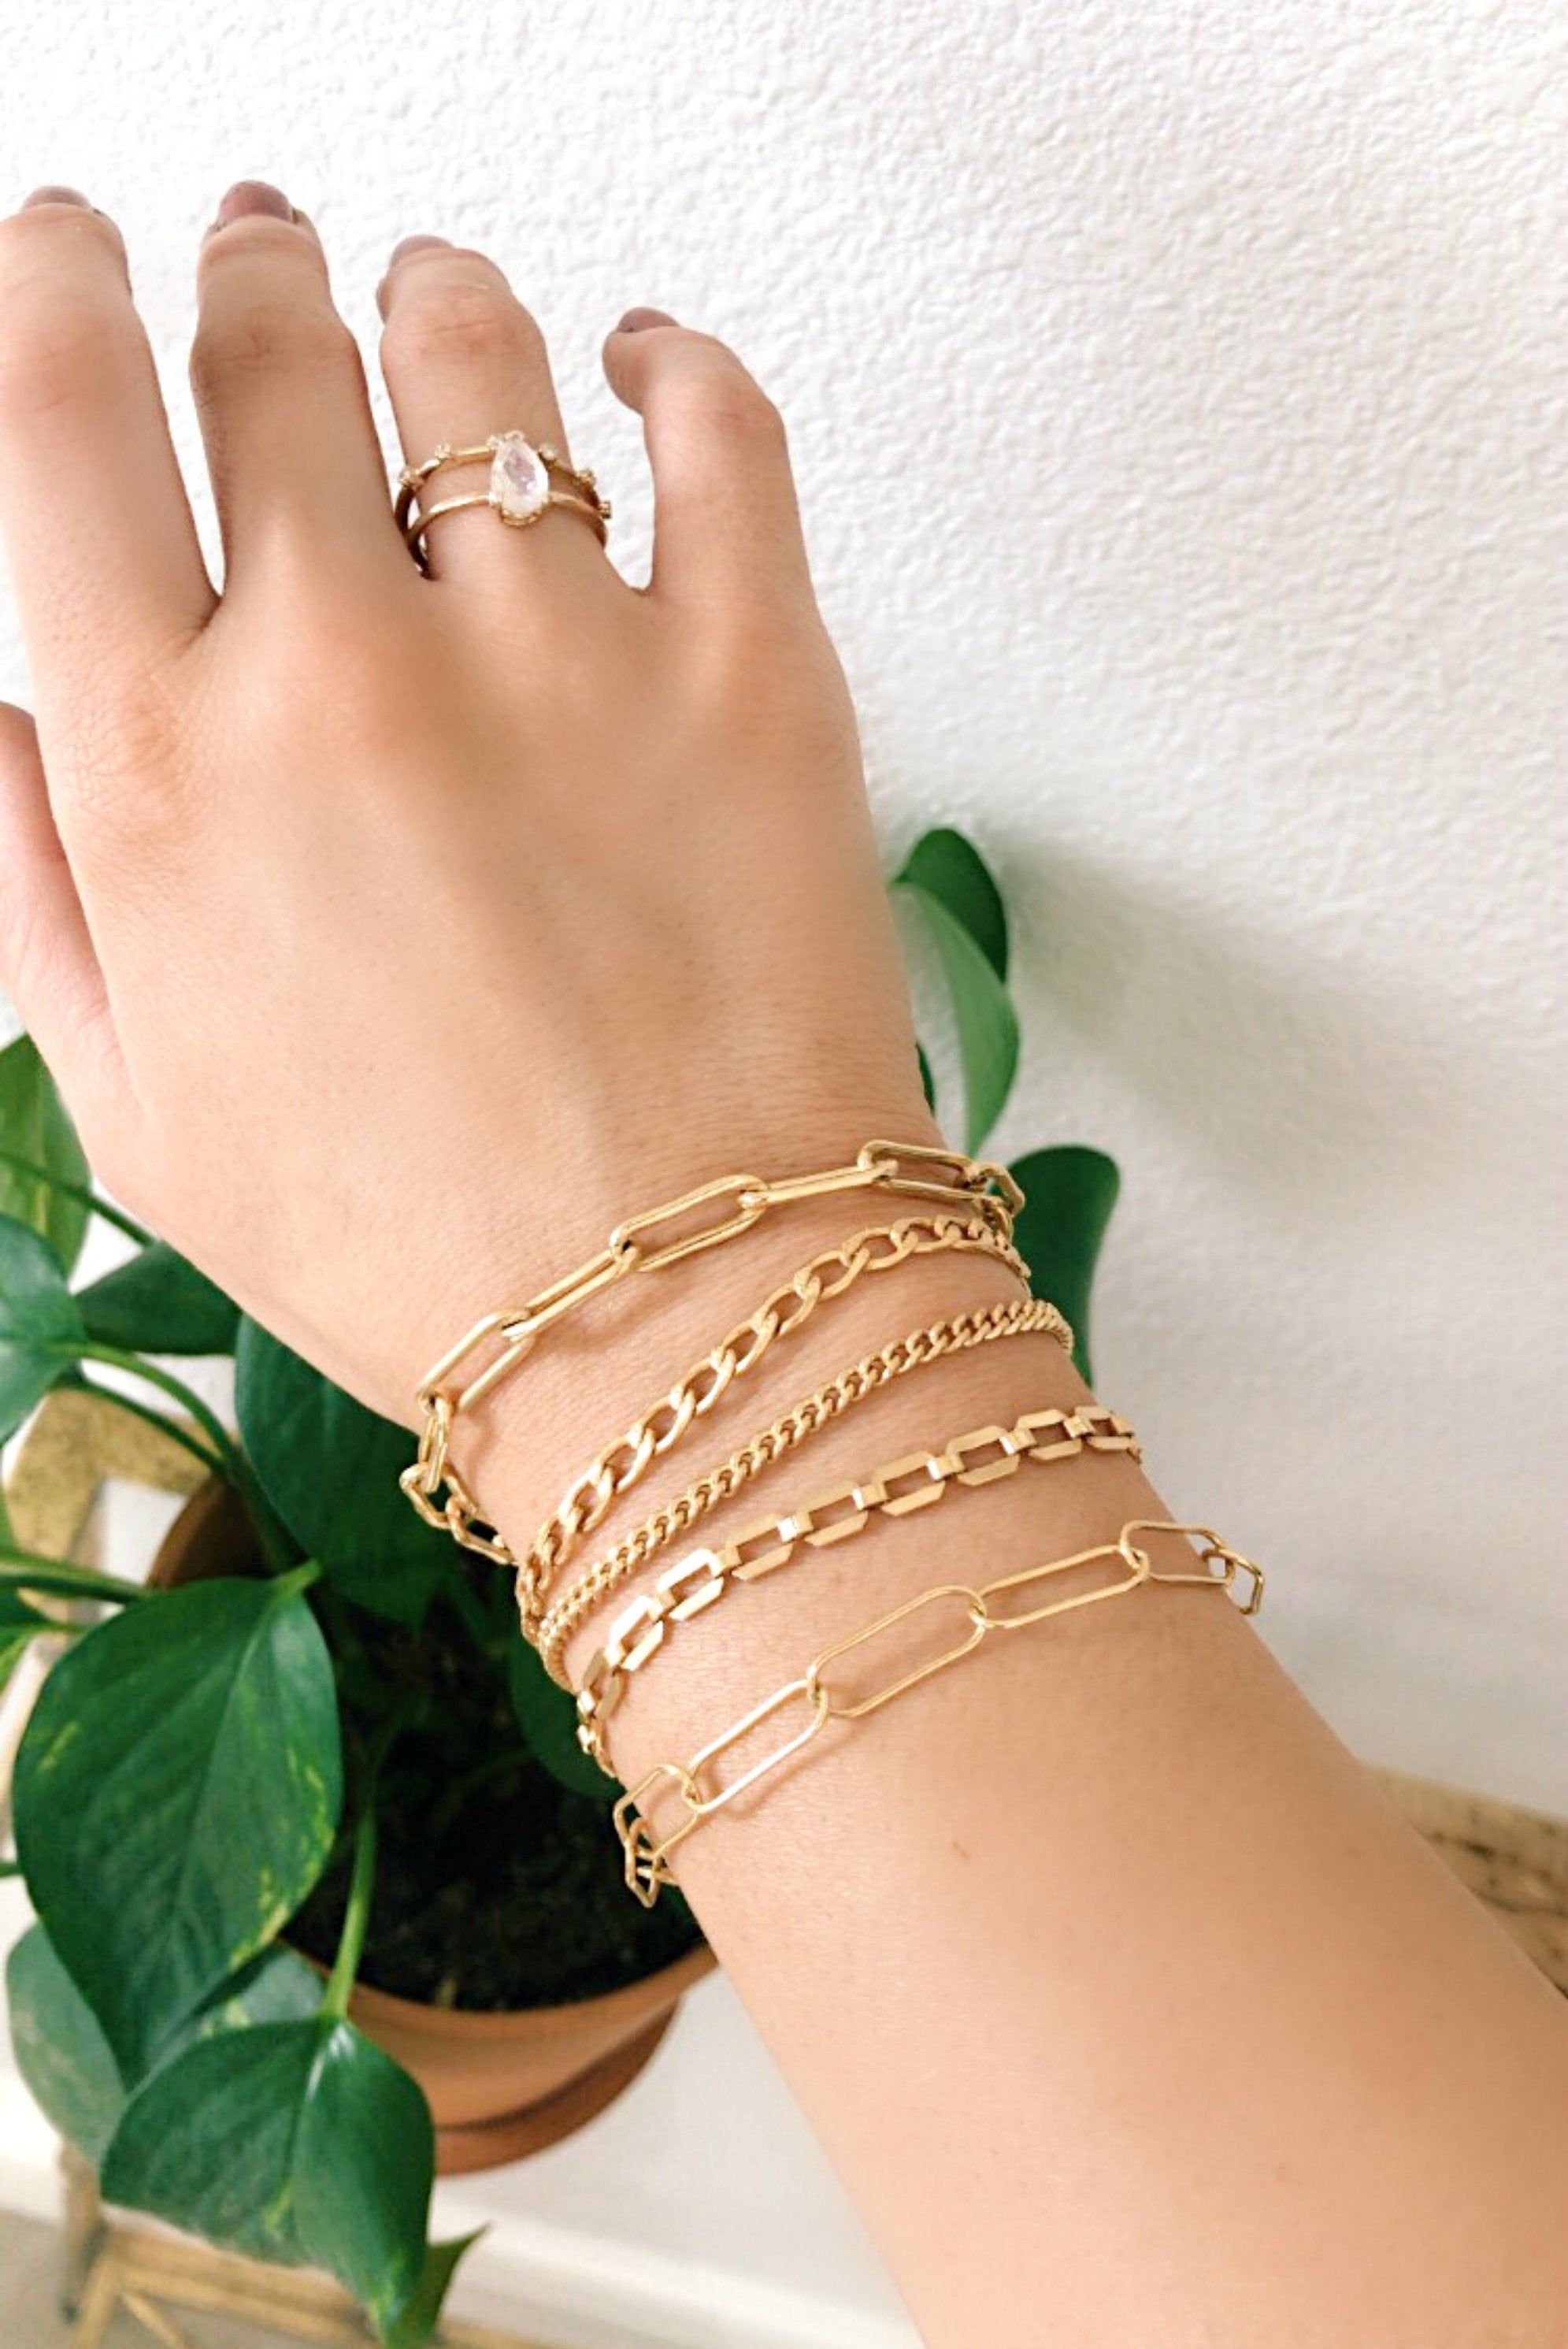 gift set Valentine gold bracelet and earring set bracelet cuff Bracelet and hoop earrings set hoop earrings jewelry set gift for her